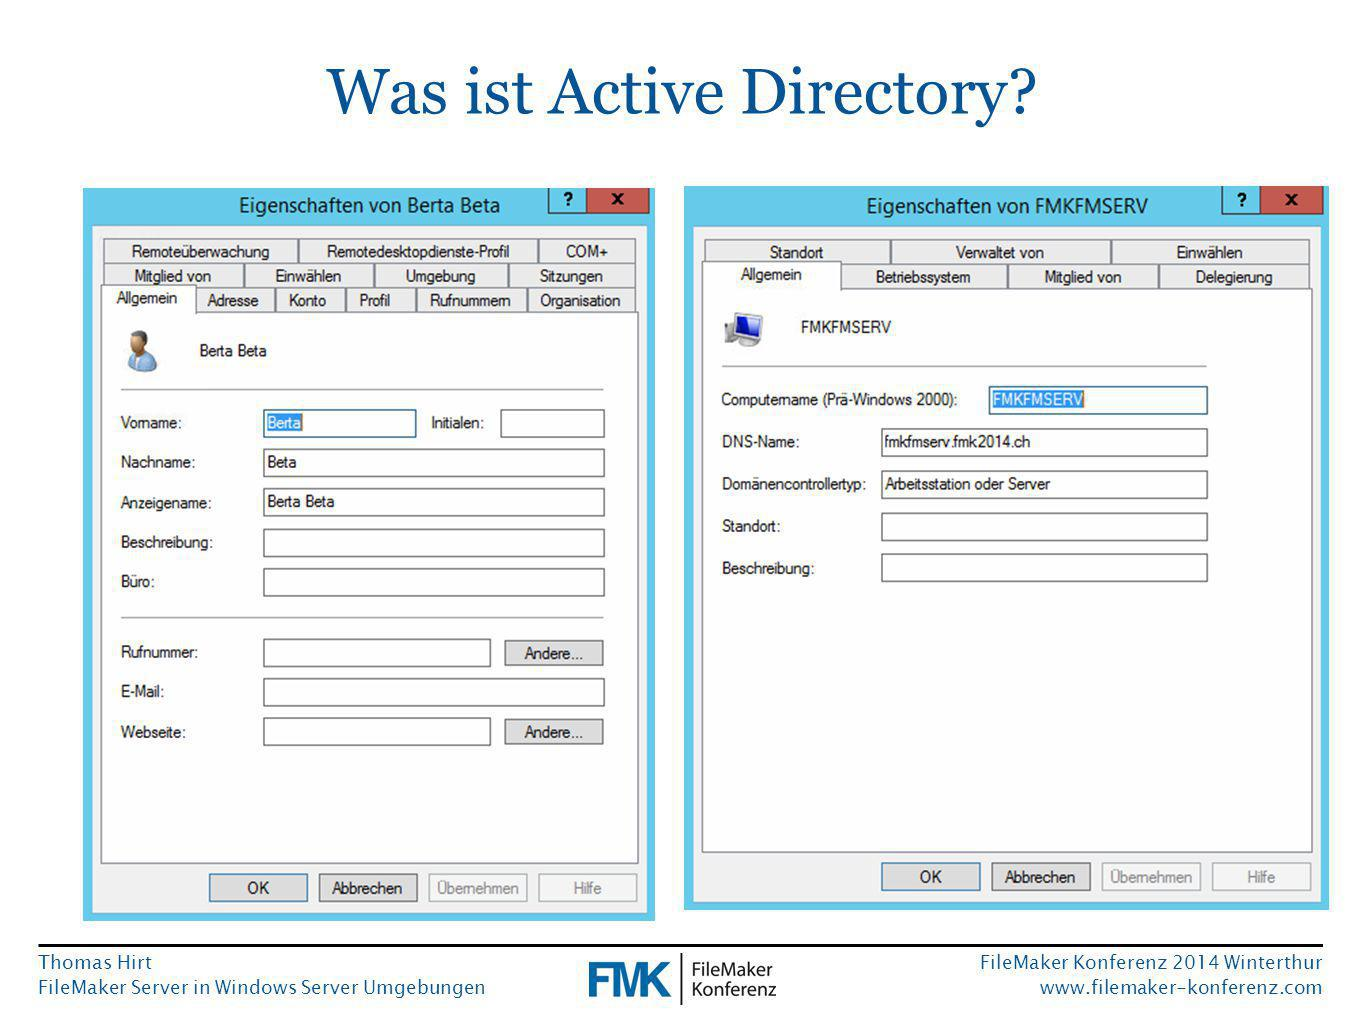 Thomas Hirt FileMaker Server in Windows Server Umgebungen FileMaker Konferenz 2014 Winterthur www.filemaker-konferenz.com Was ist Active Directory?